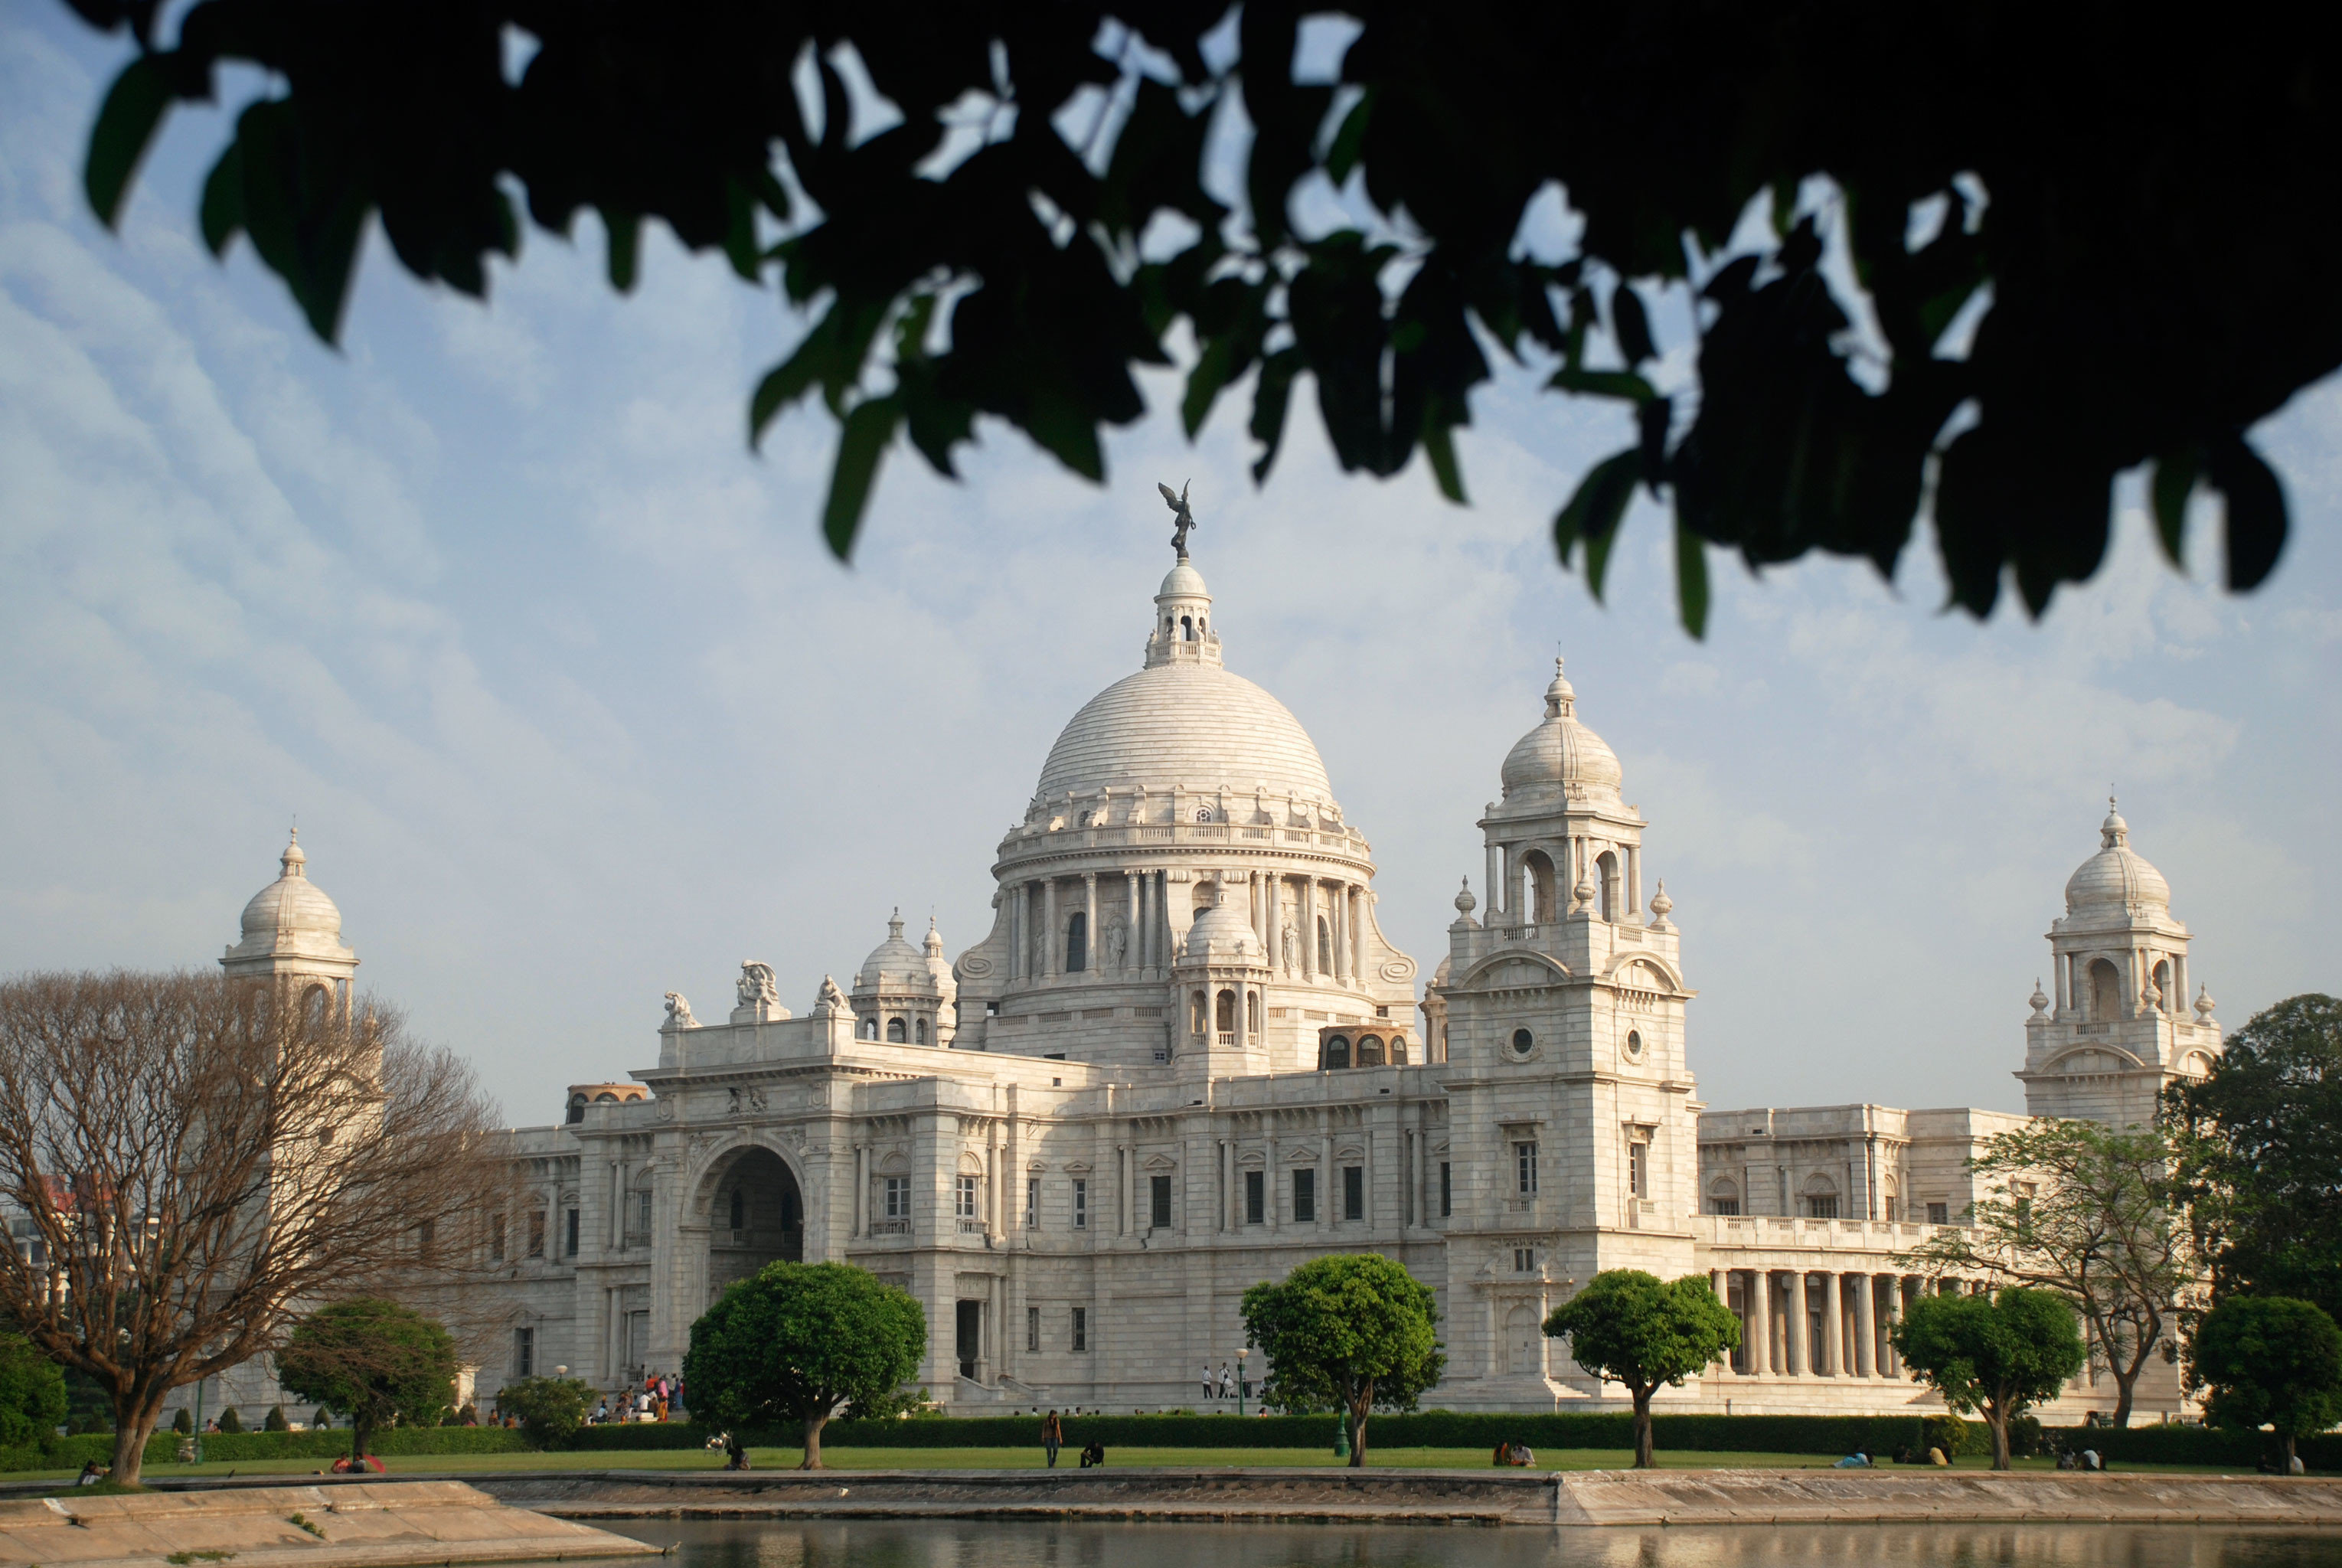 Architecture Buildings Luxury Scenic views building landmark palace place of worship cathedral